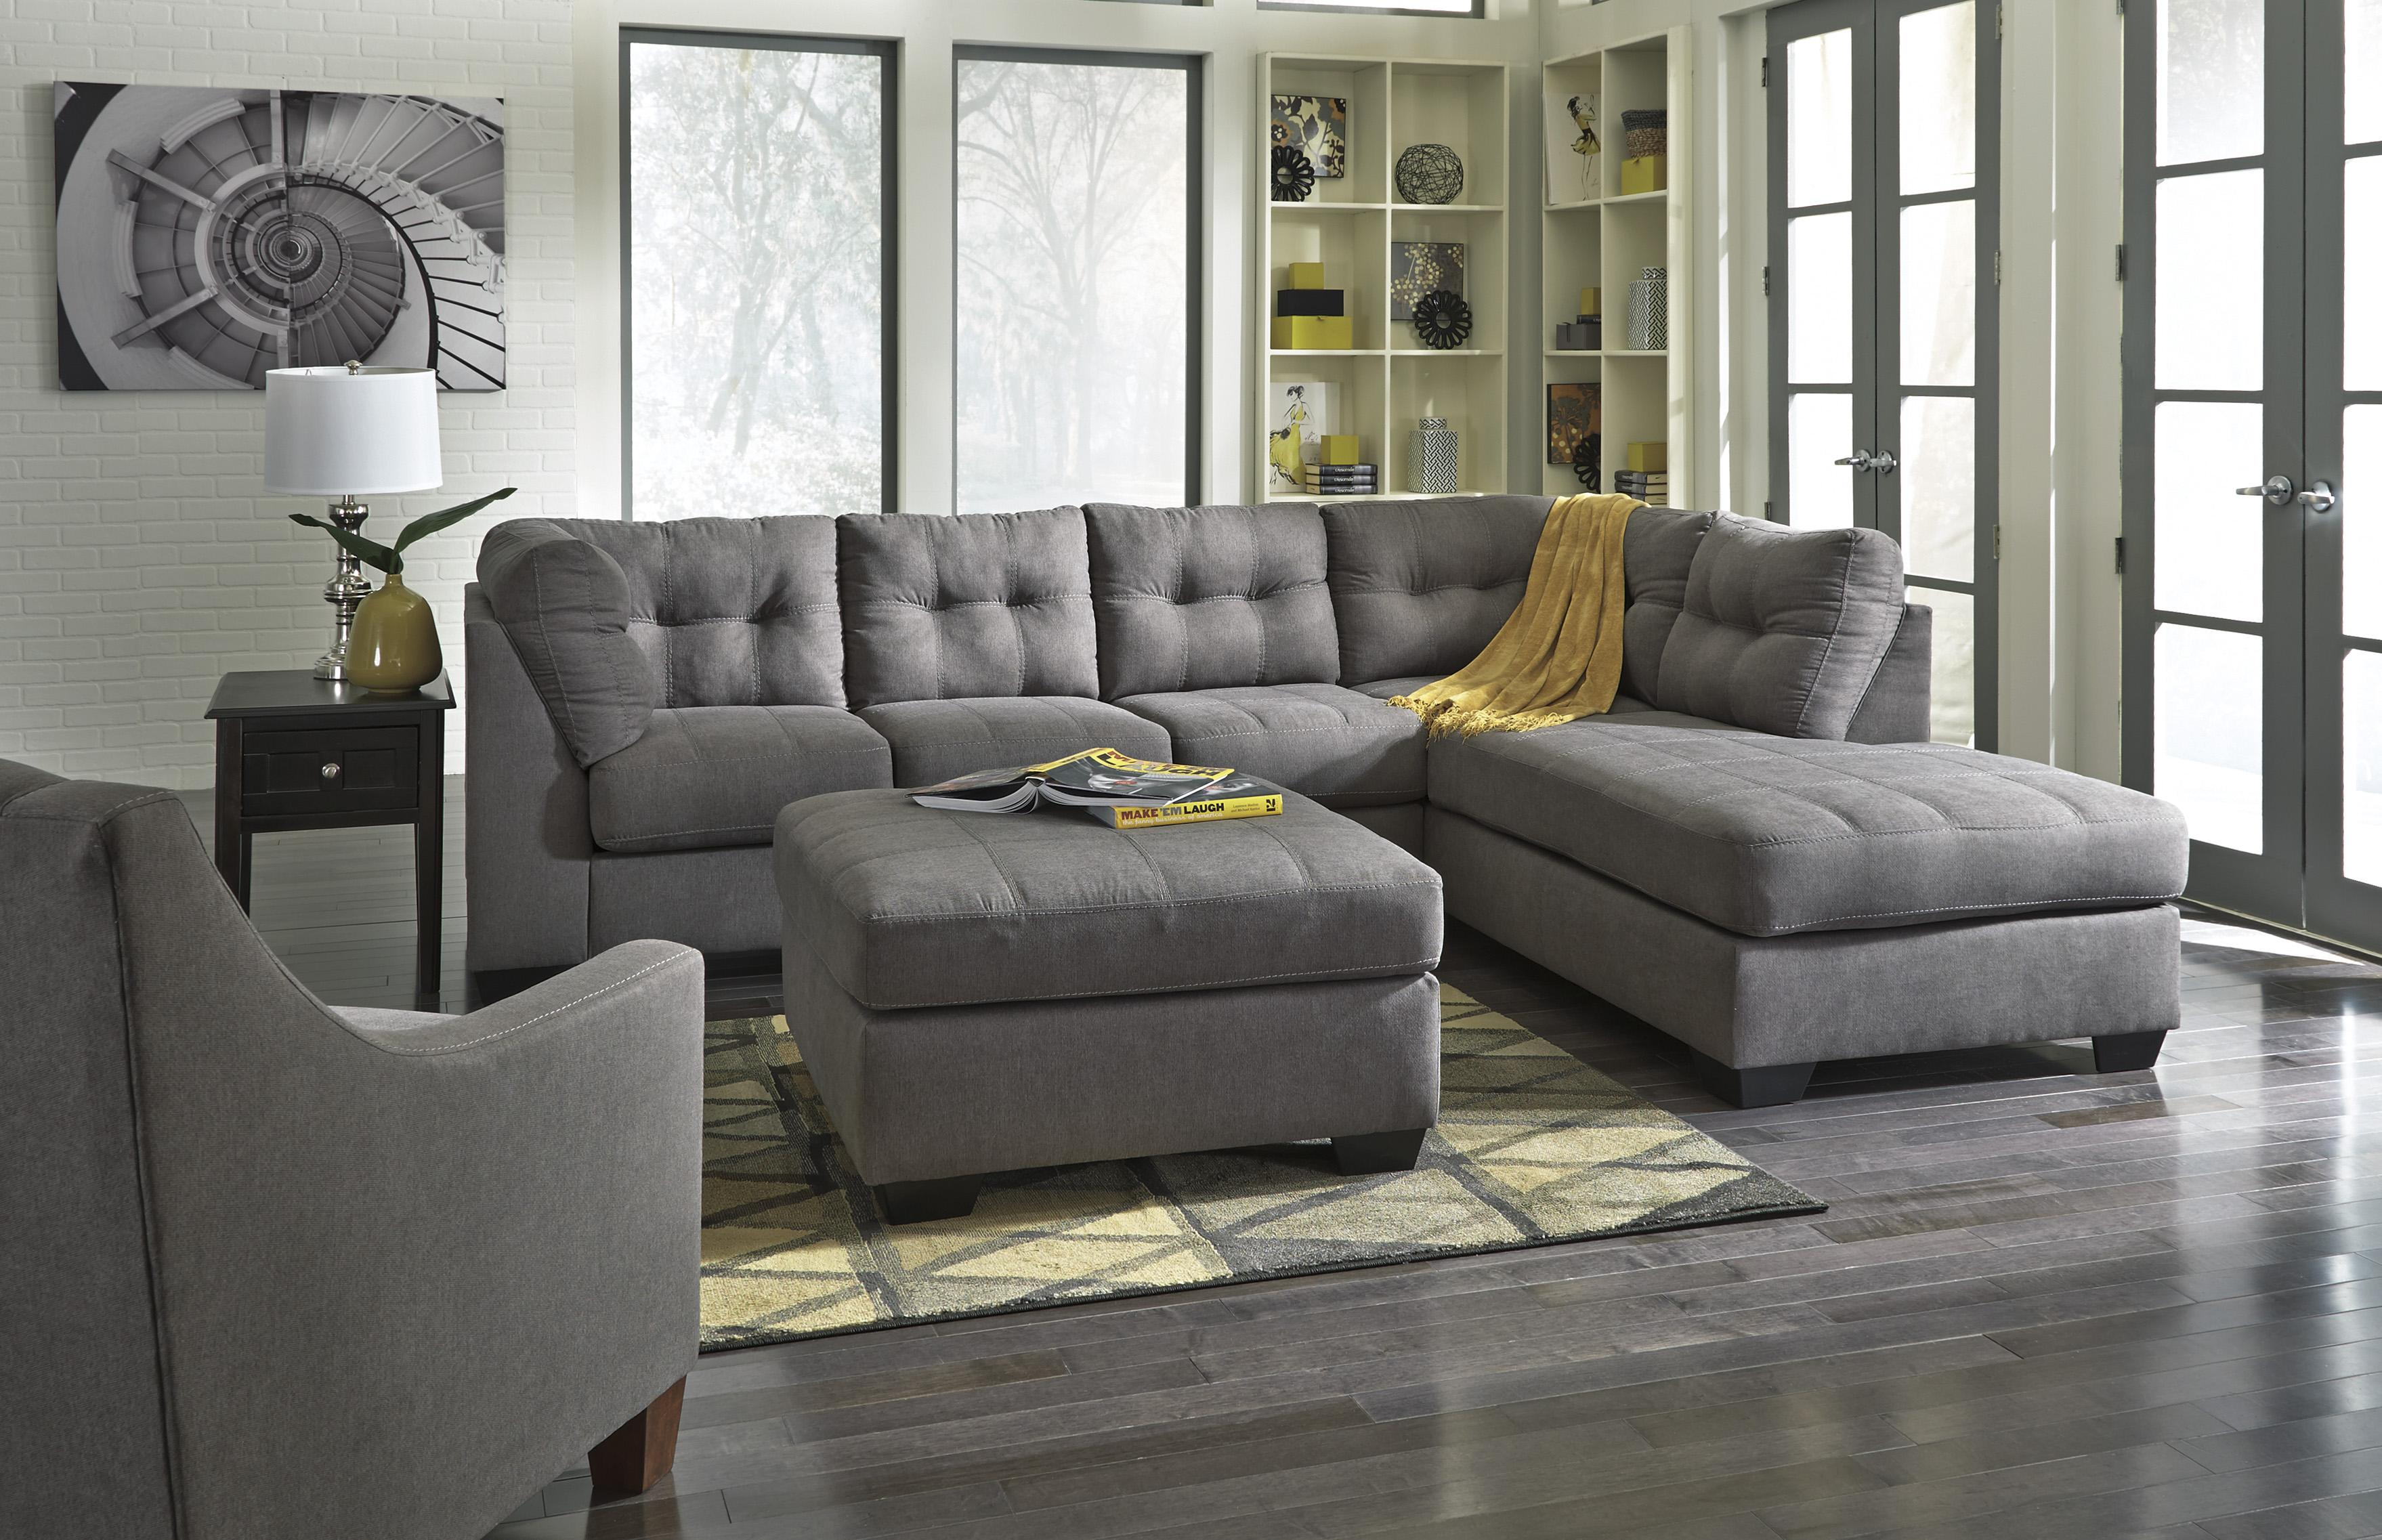 microfiber lounge angled sofa top gray sectional chaise with in popular to